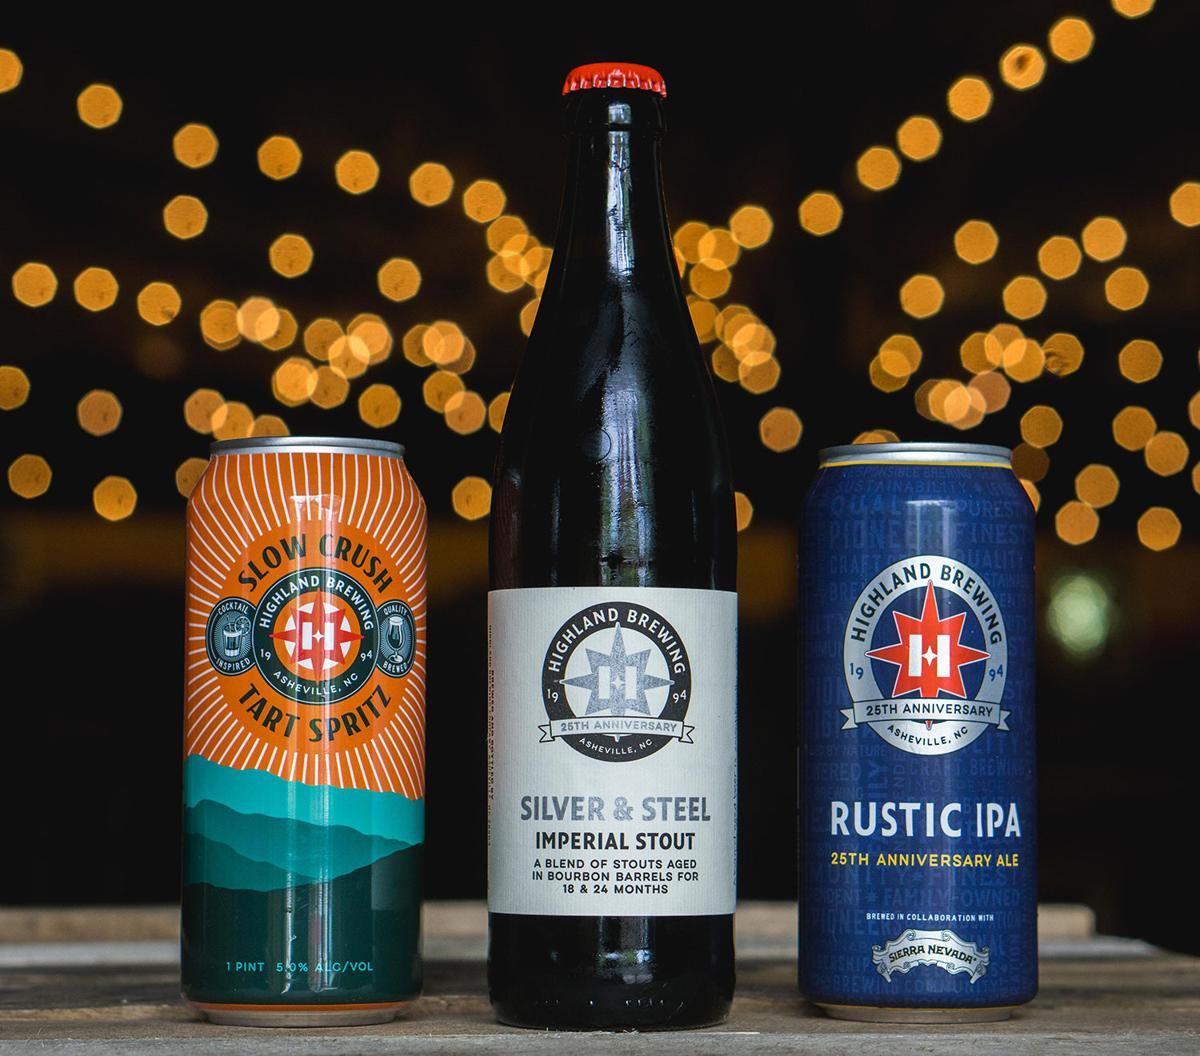 Highland's 25th anniversary releases Slow Crush Tart Spritz; Silver & Steel Imperial Stout aged in Bourbon barrels; and Rustic IPA